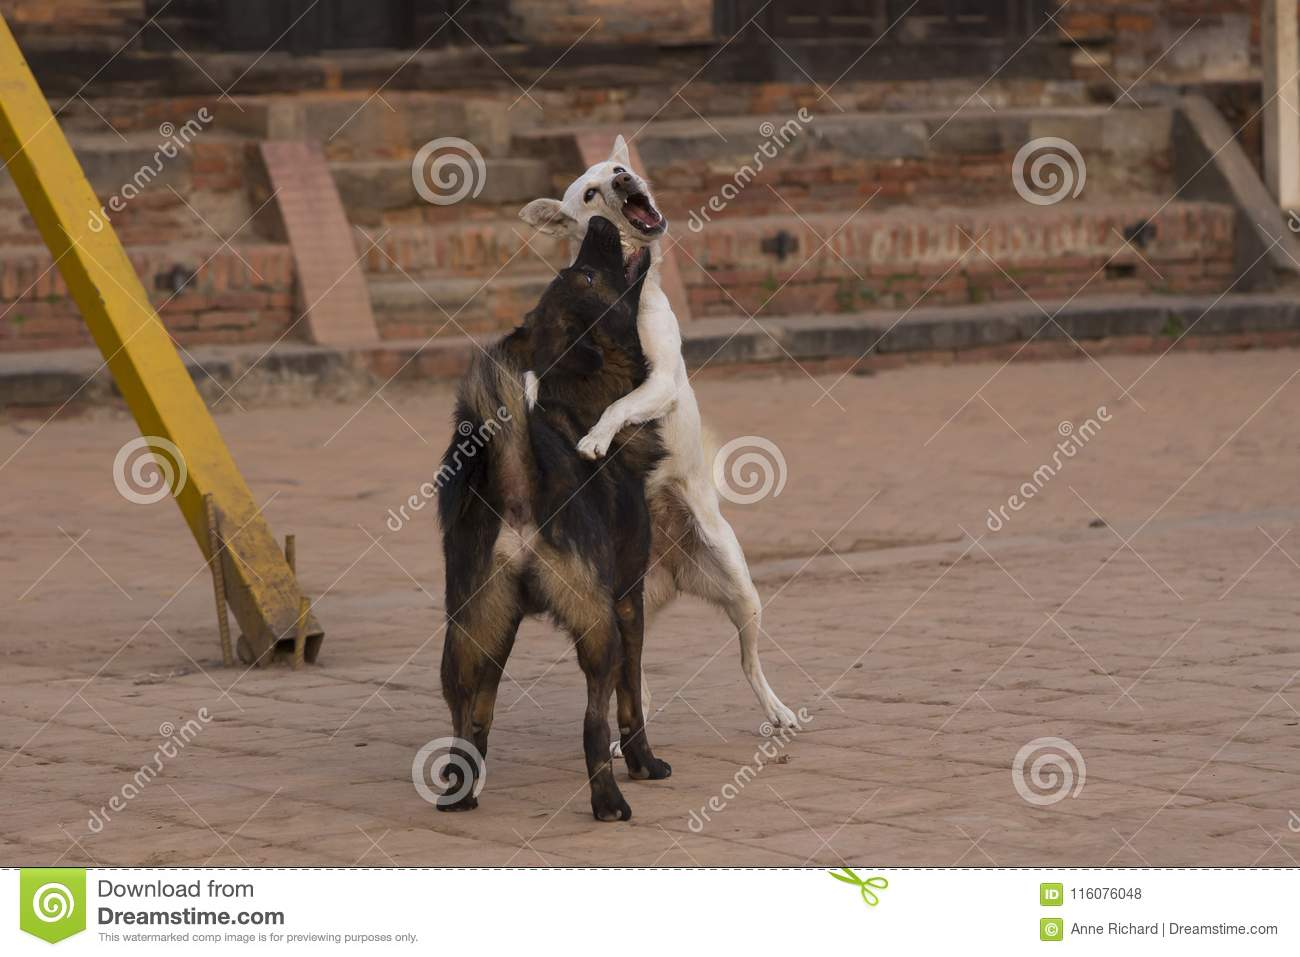 Street dogs jumping on each other while mock fighting